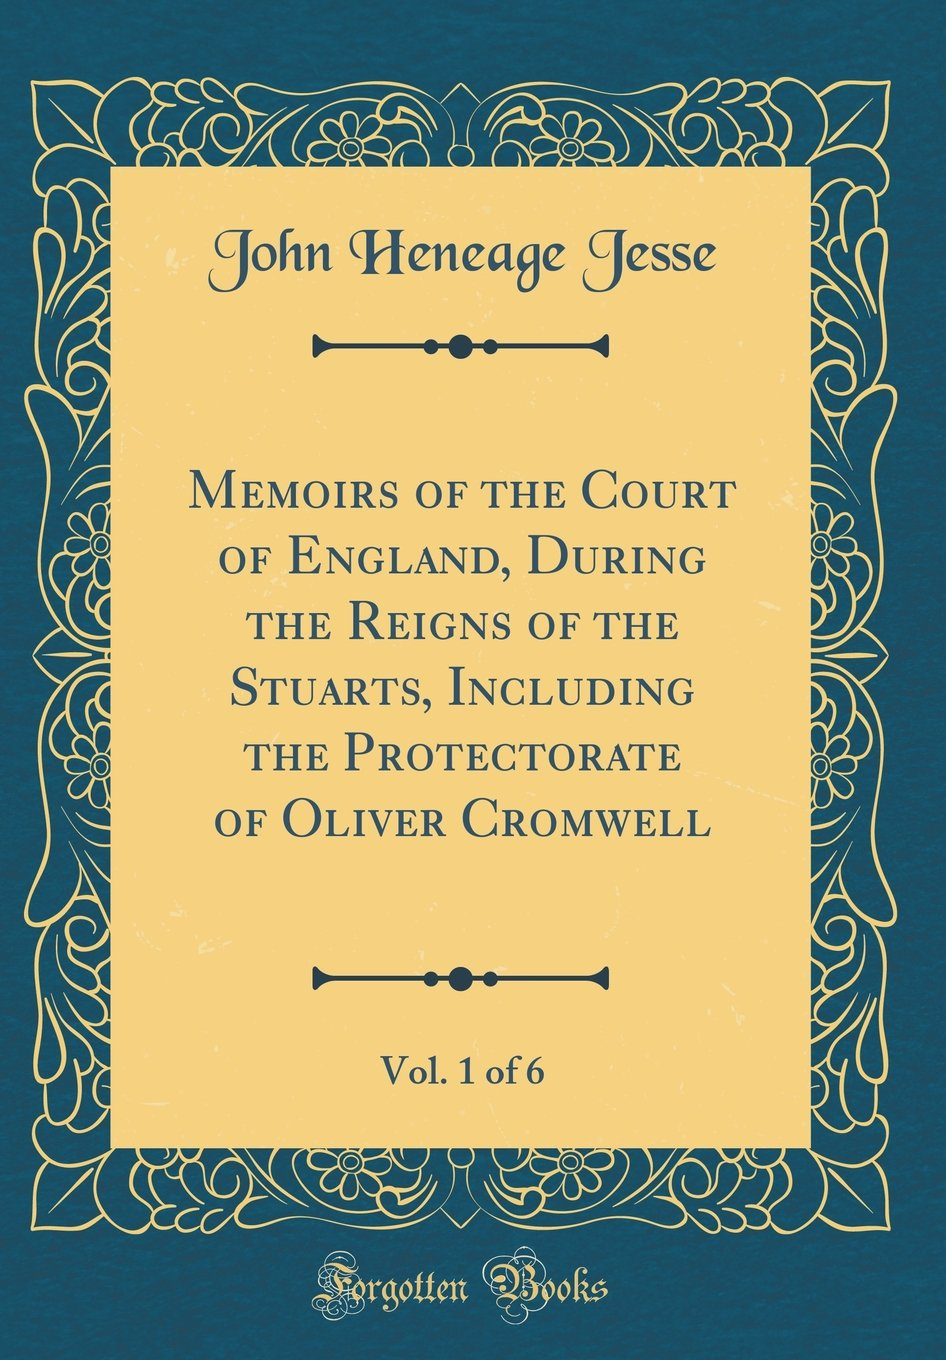 Memoirs of the Court of England, During the Reigns of the Stuarts, Including the Protectorate of Oliver Cromwell, Vol. 1 of 6 (Classic Reprint) pdf epub